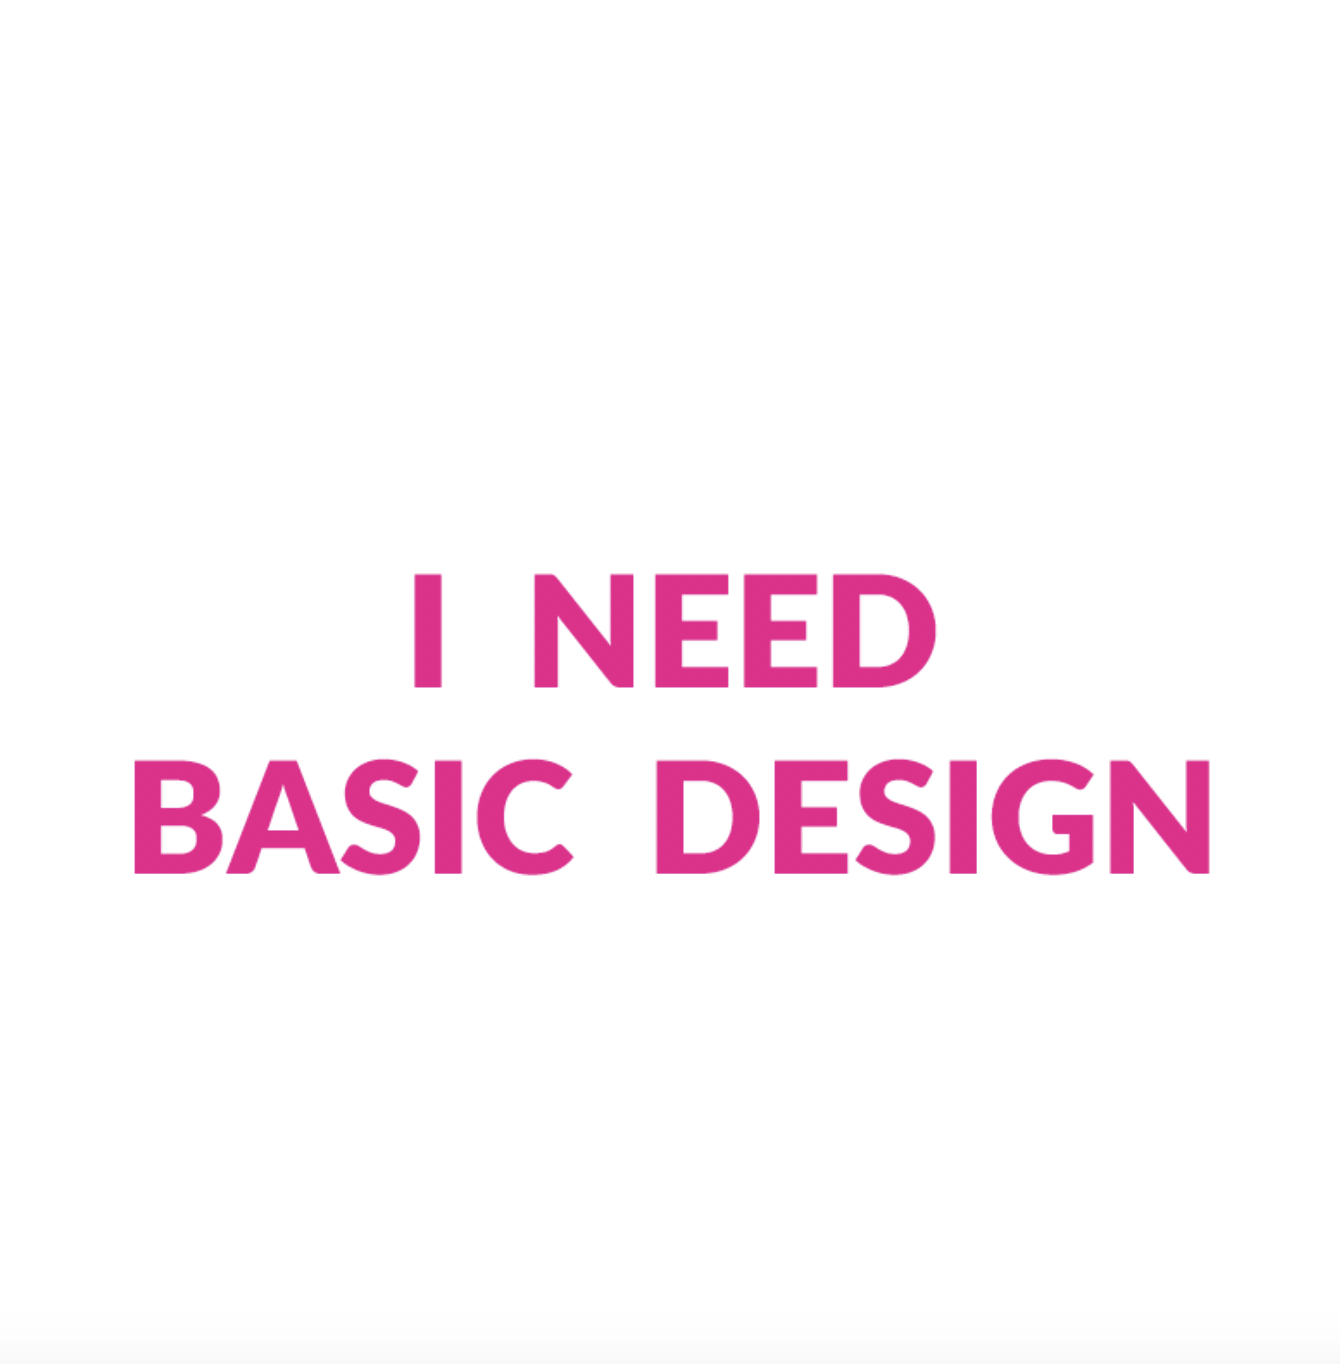 I need Basic Design